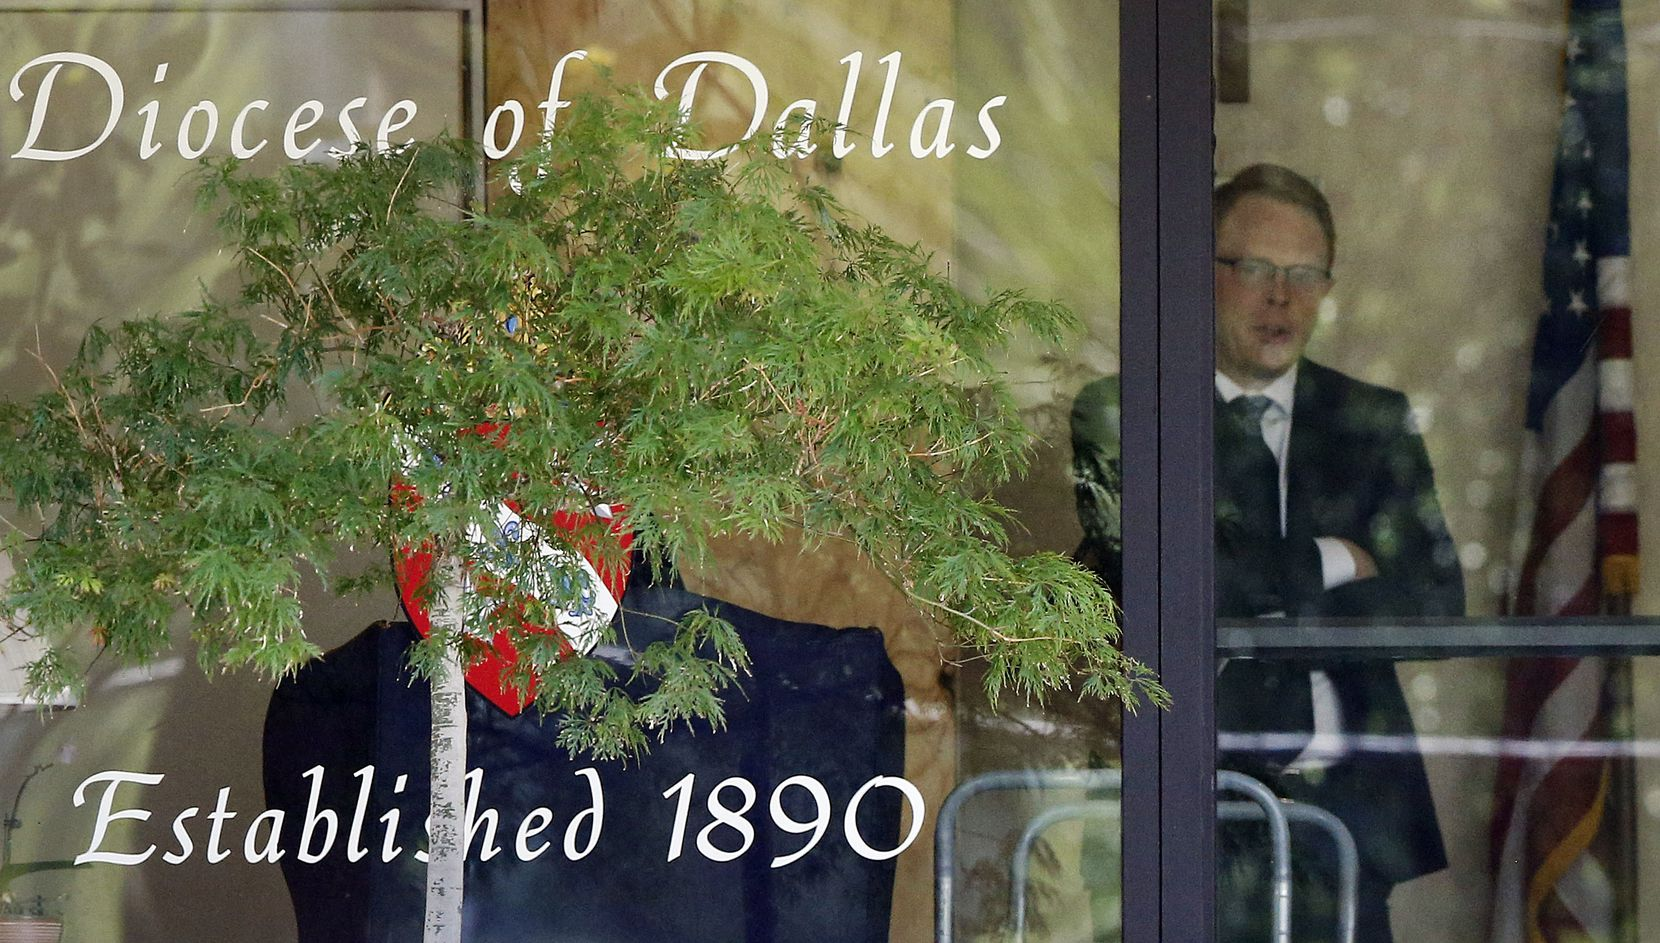 Law enforcement officials raided Catholic Diocese of Dallas offices and facilities Wednesday.